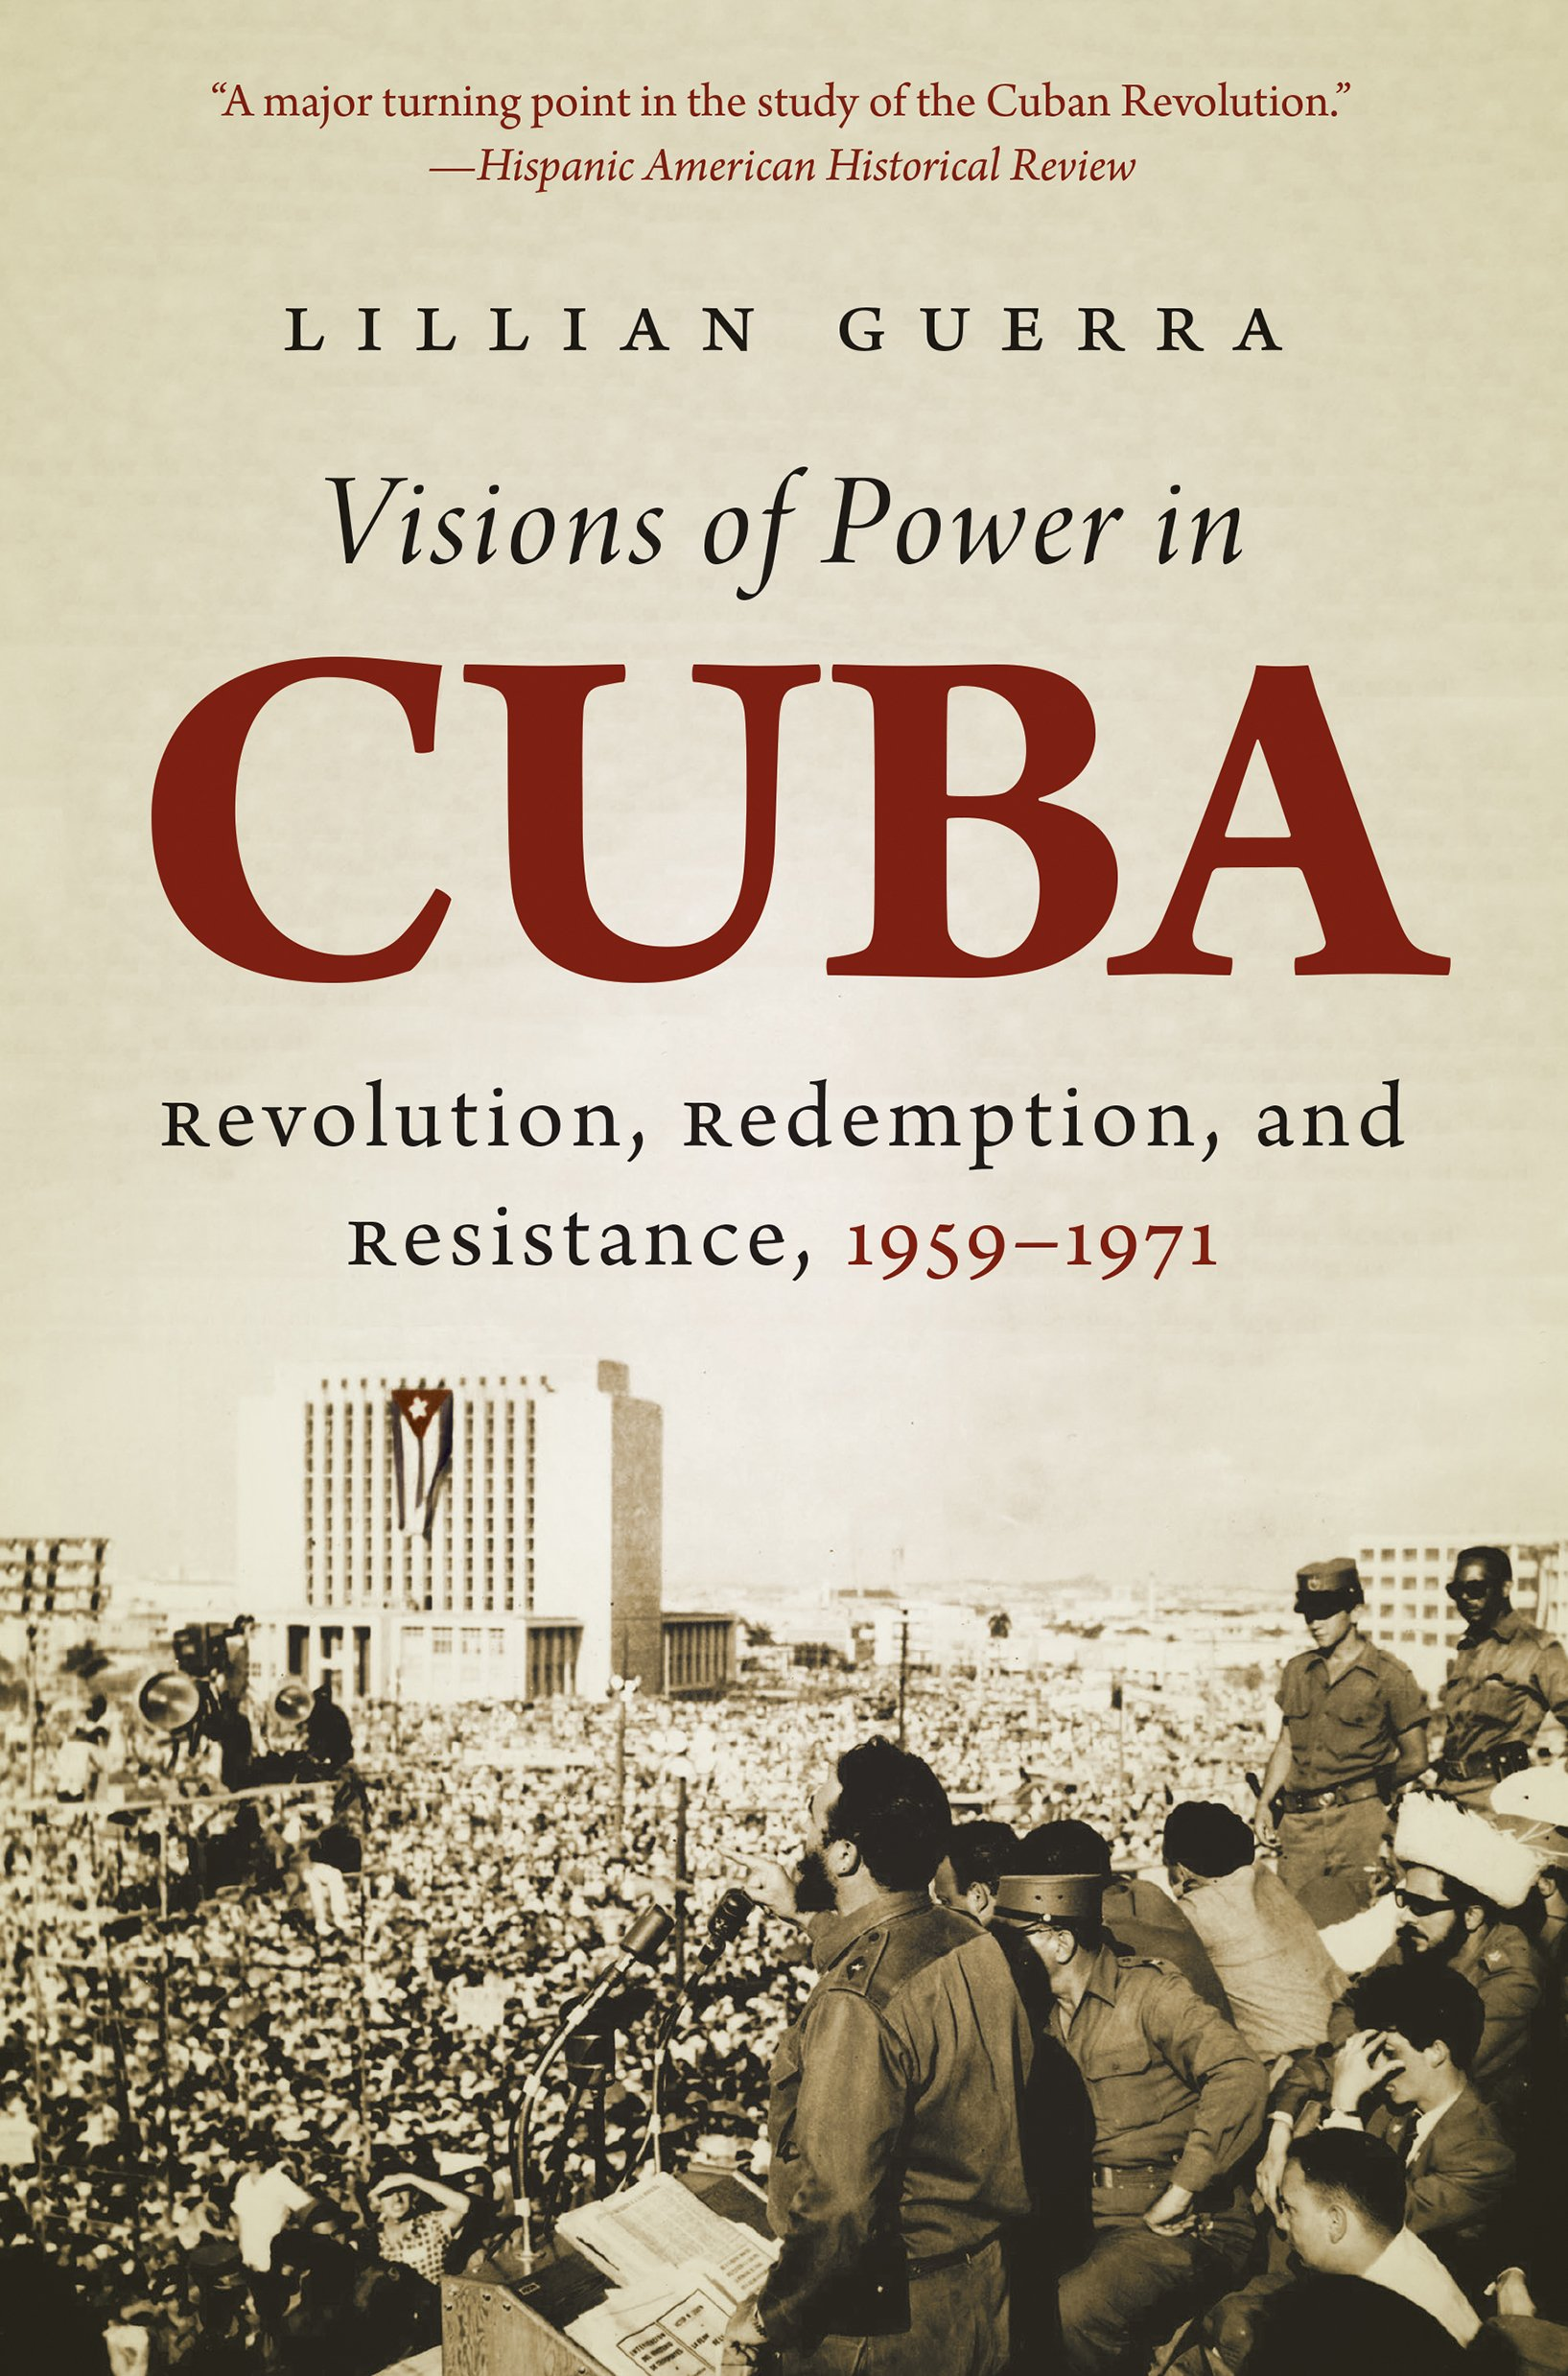 book cover of Visions of Power in Cuba